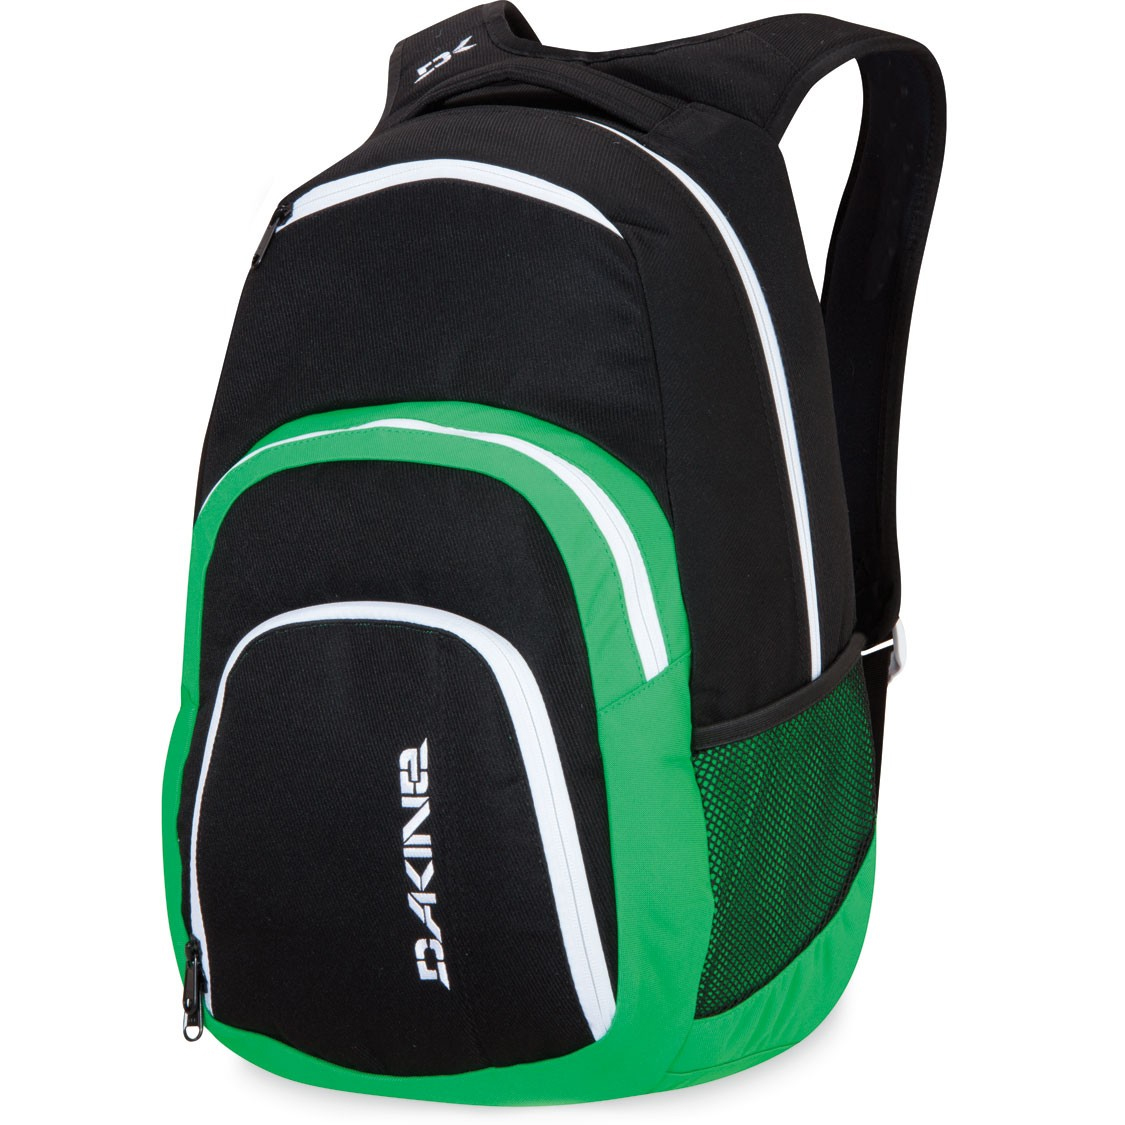 DAKINE CAMPUS BACKPACK - SMALL  (130056)